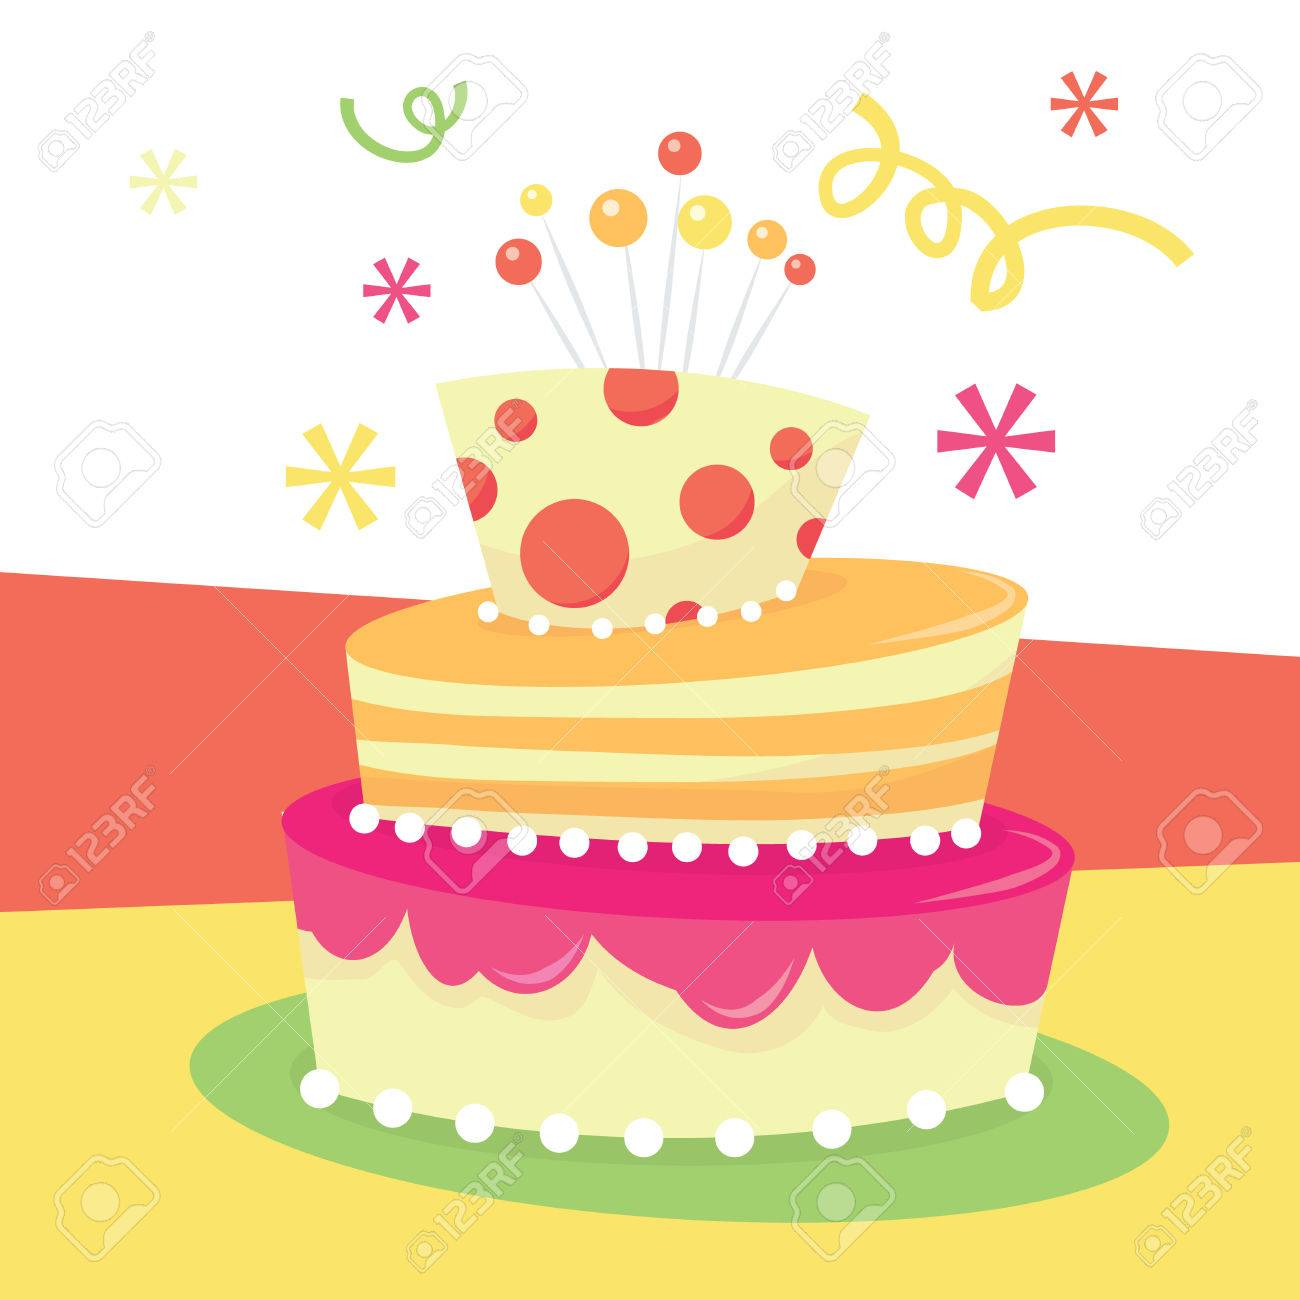 A Vector Illustration Of A Cute Whimsical Tier Mad Hatter Birthday